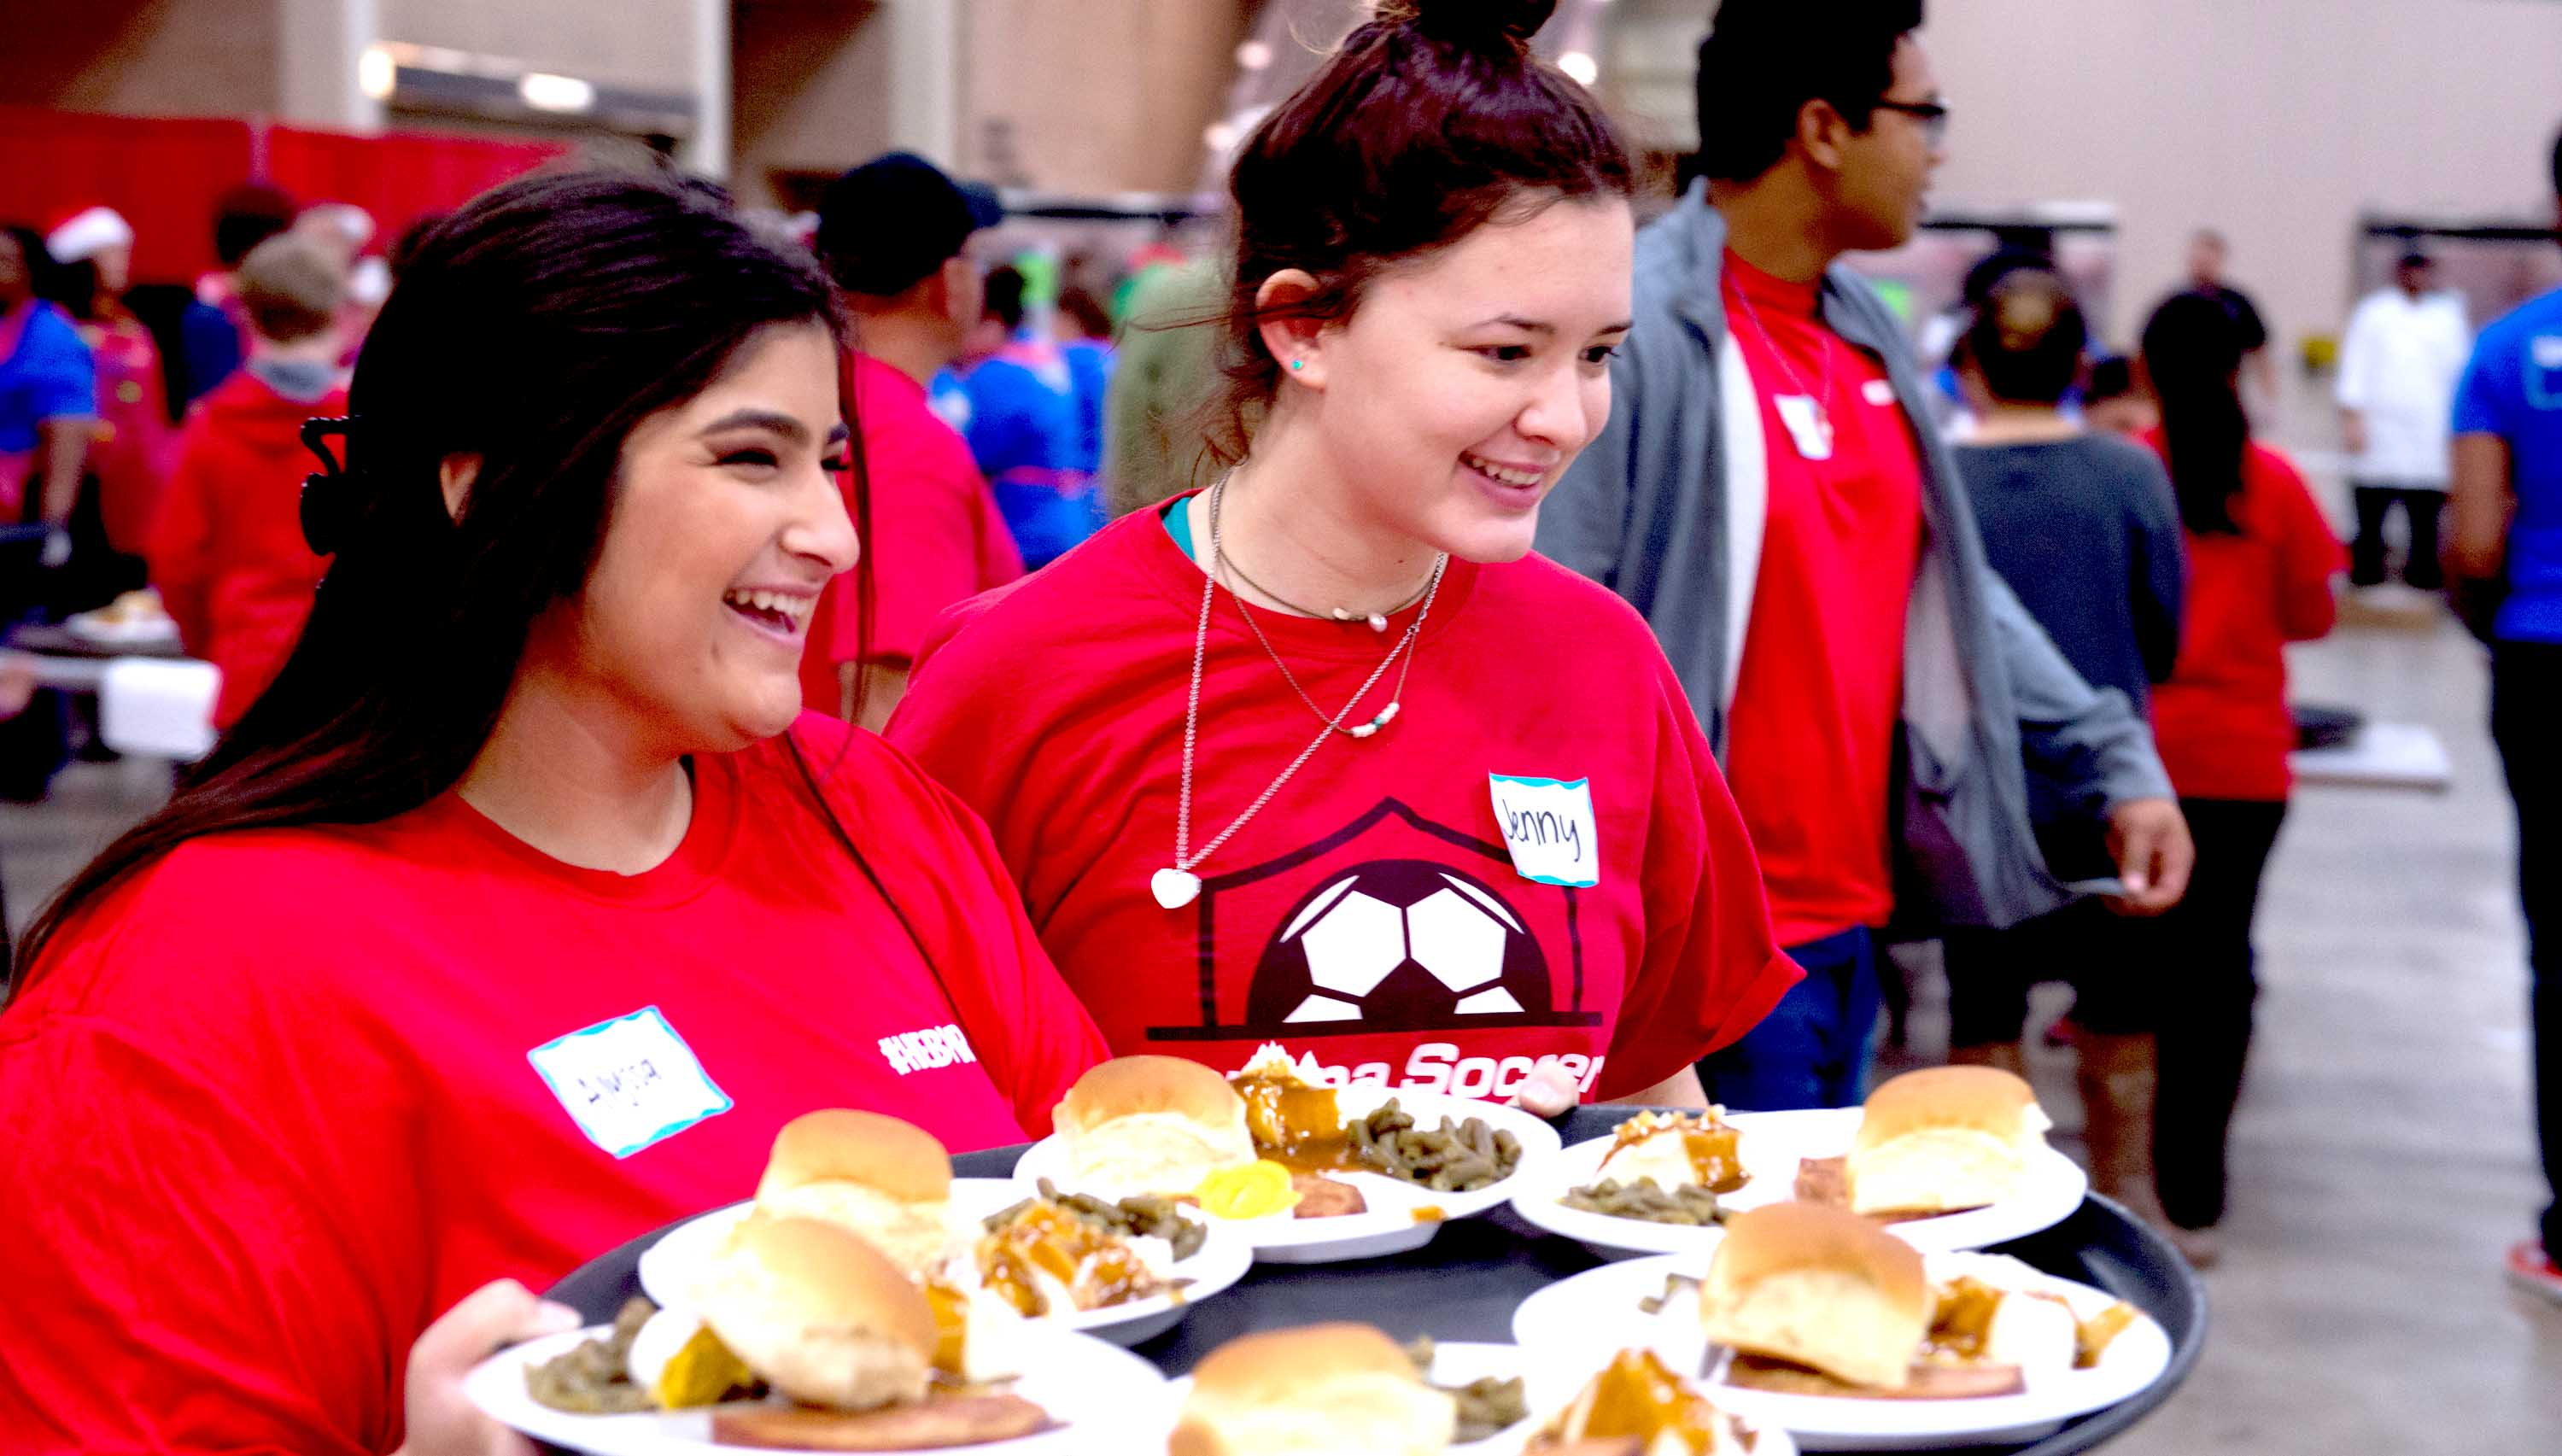 Image of H-E-B Feast of Sharing